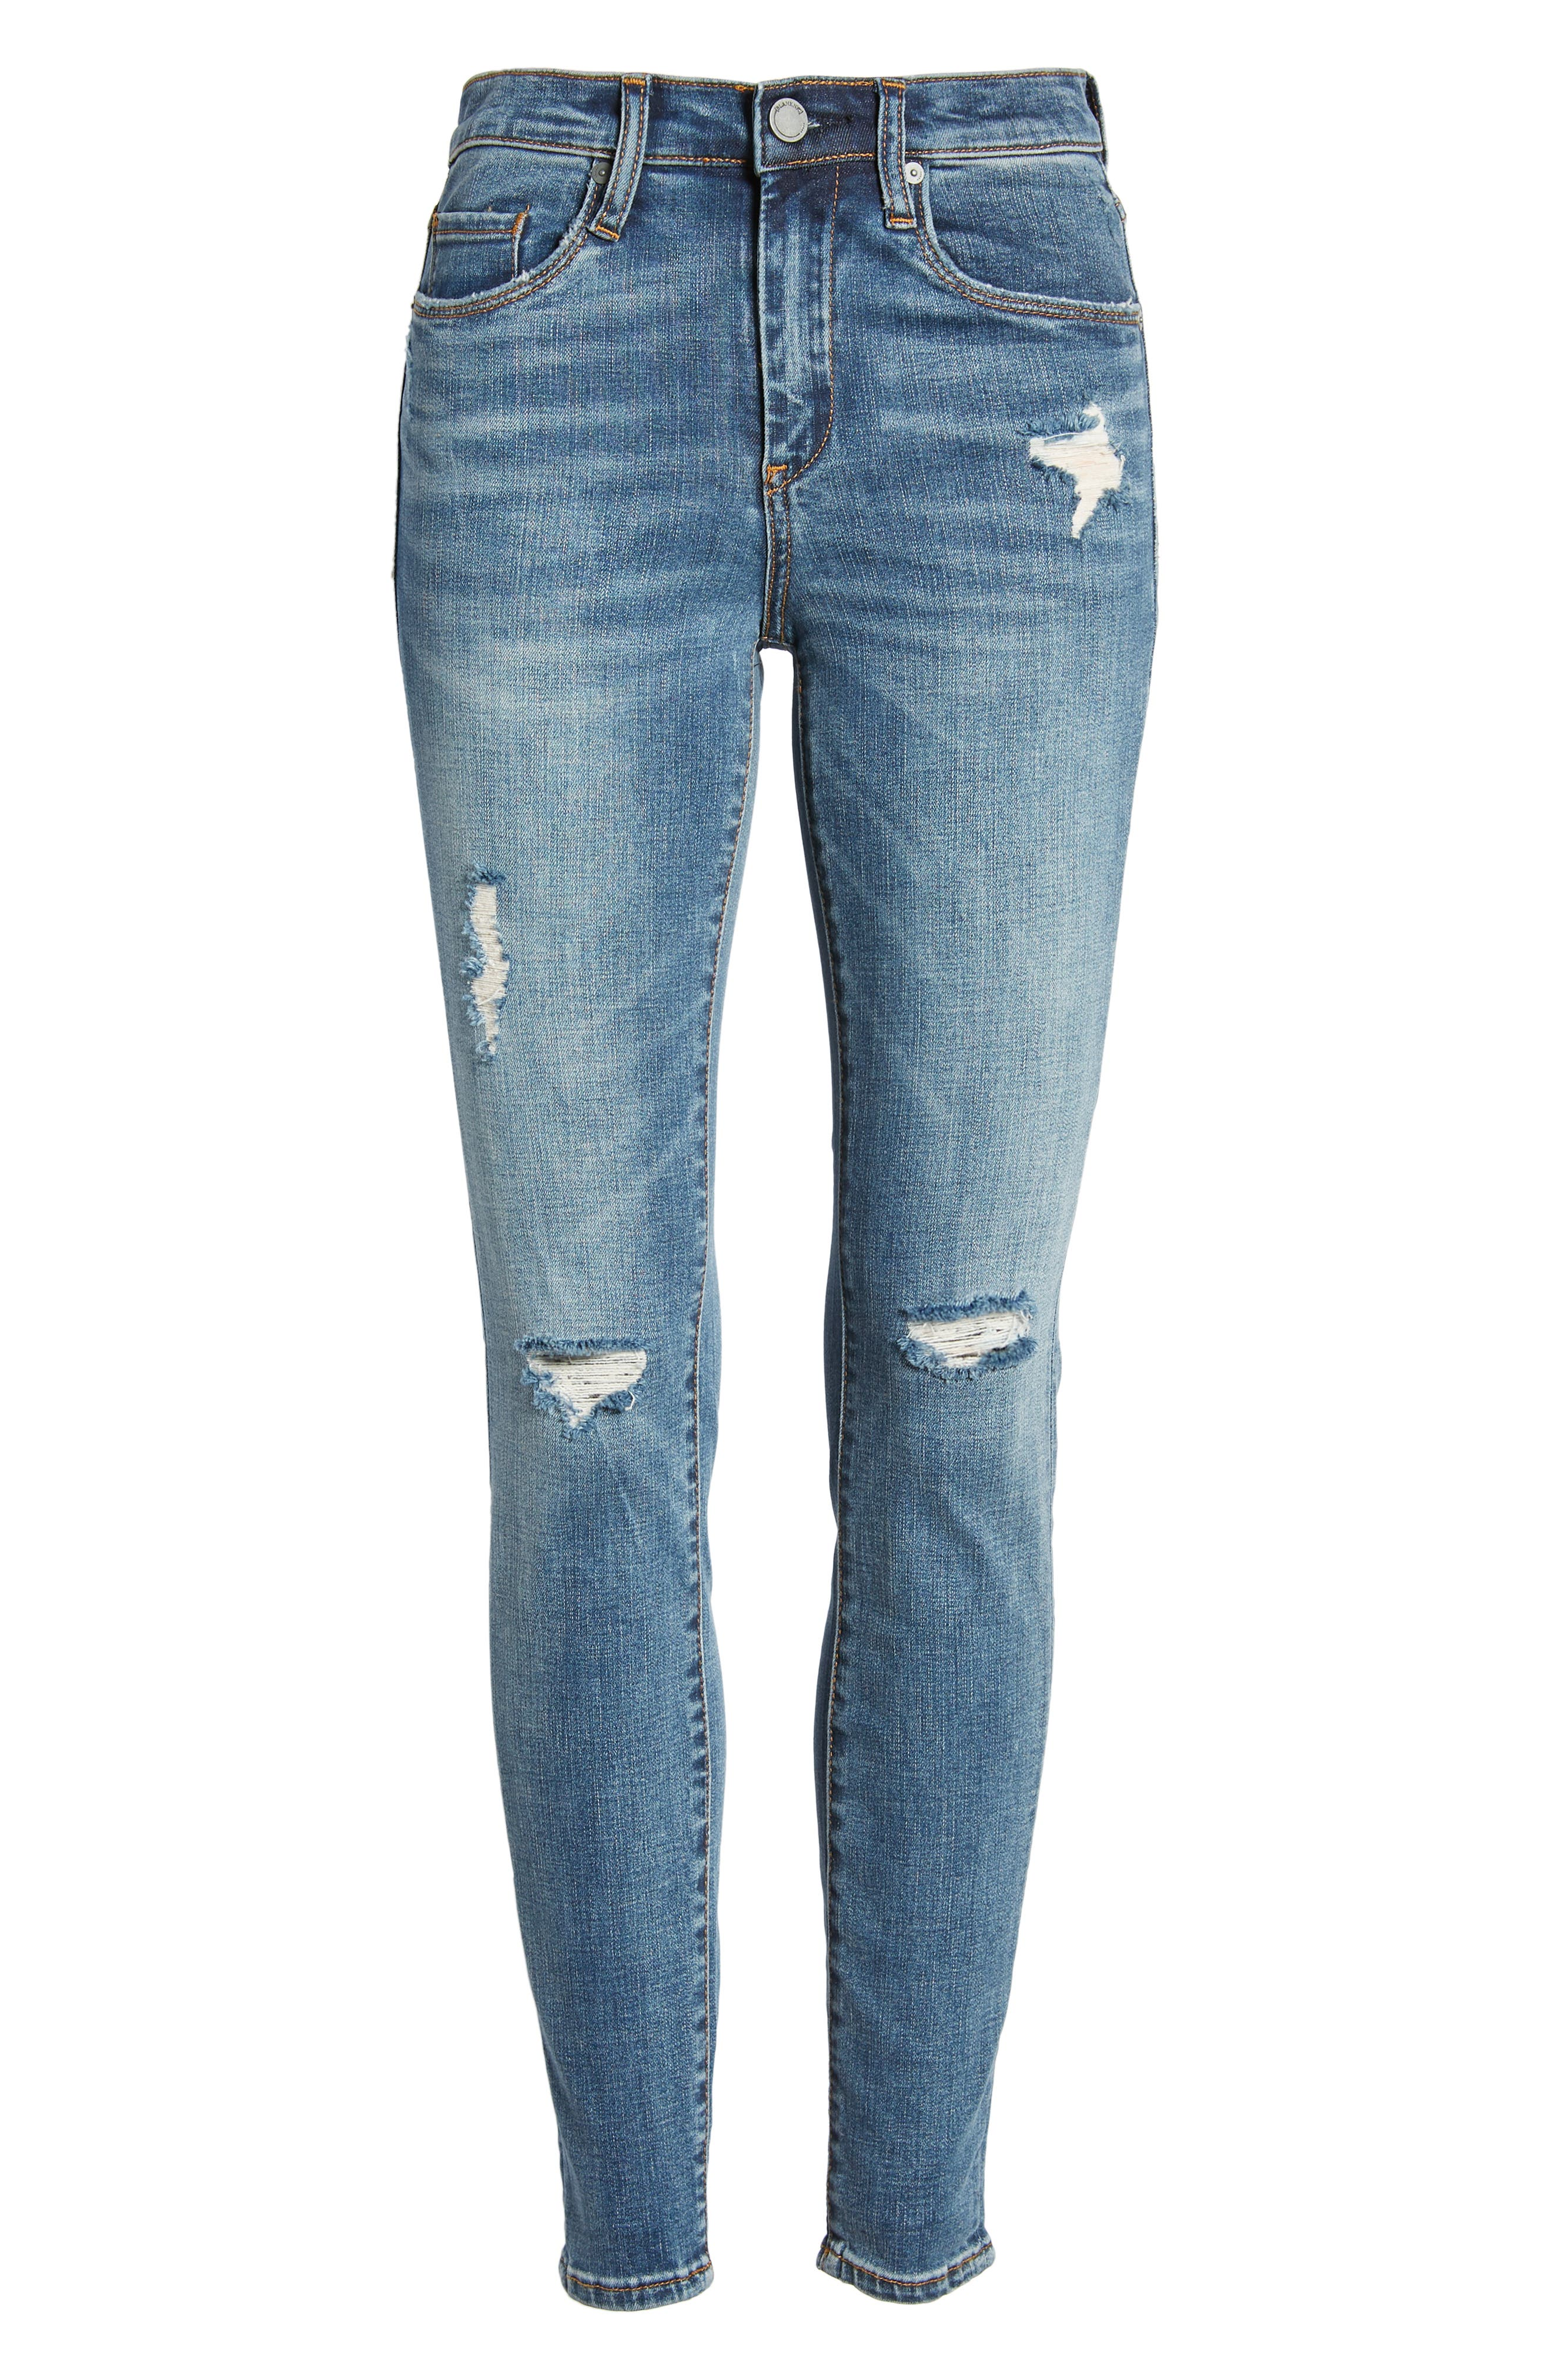 BLANKNYC, The Bond Ripped Skinny Jeans, Alternate thumbnail 4, color, JERSEY GIRLS